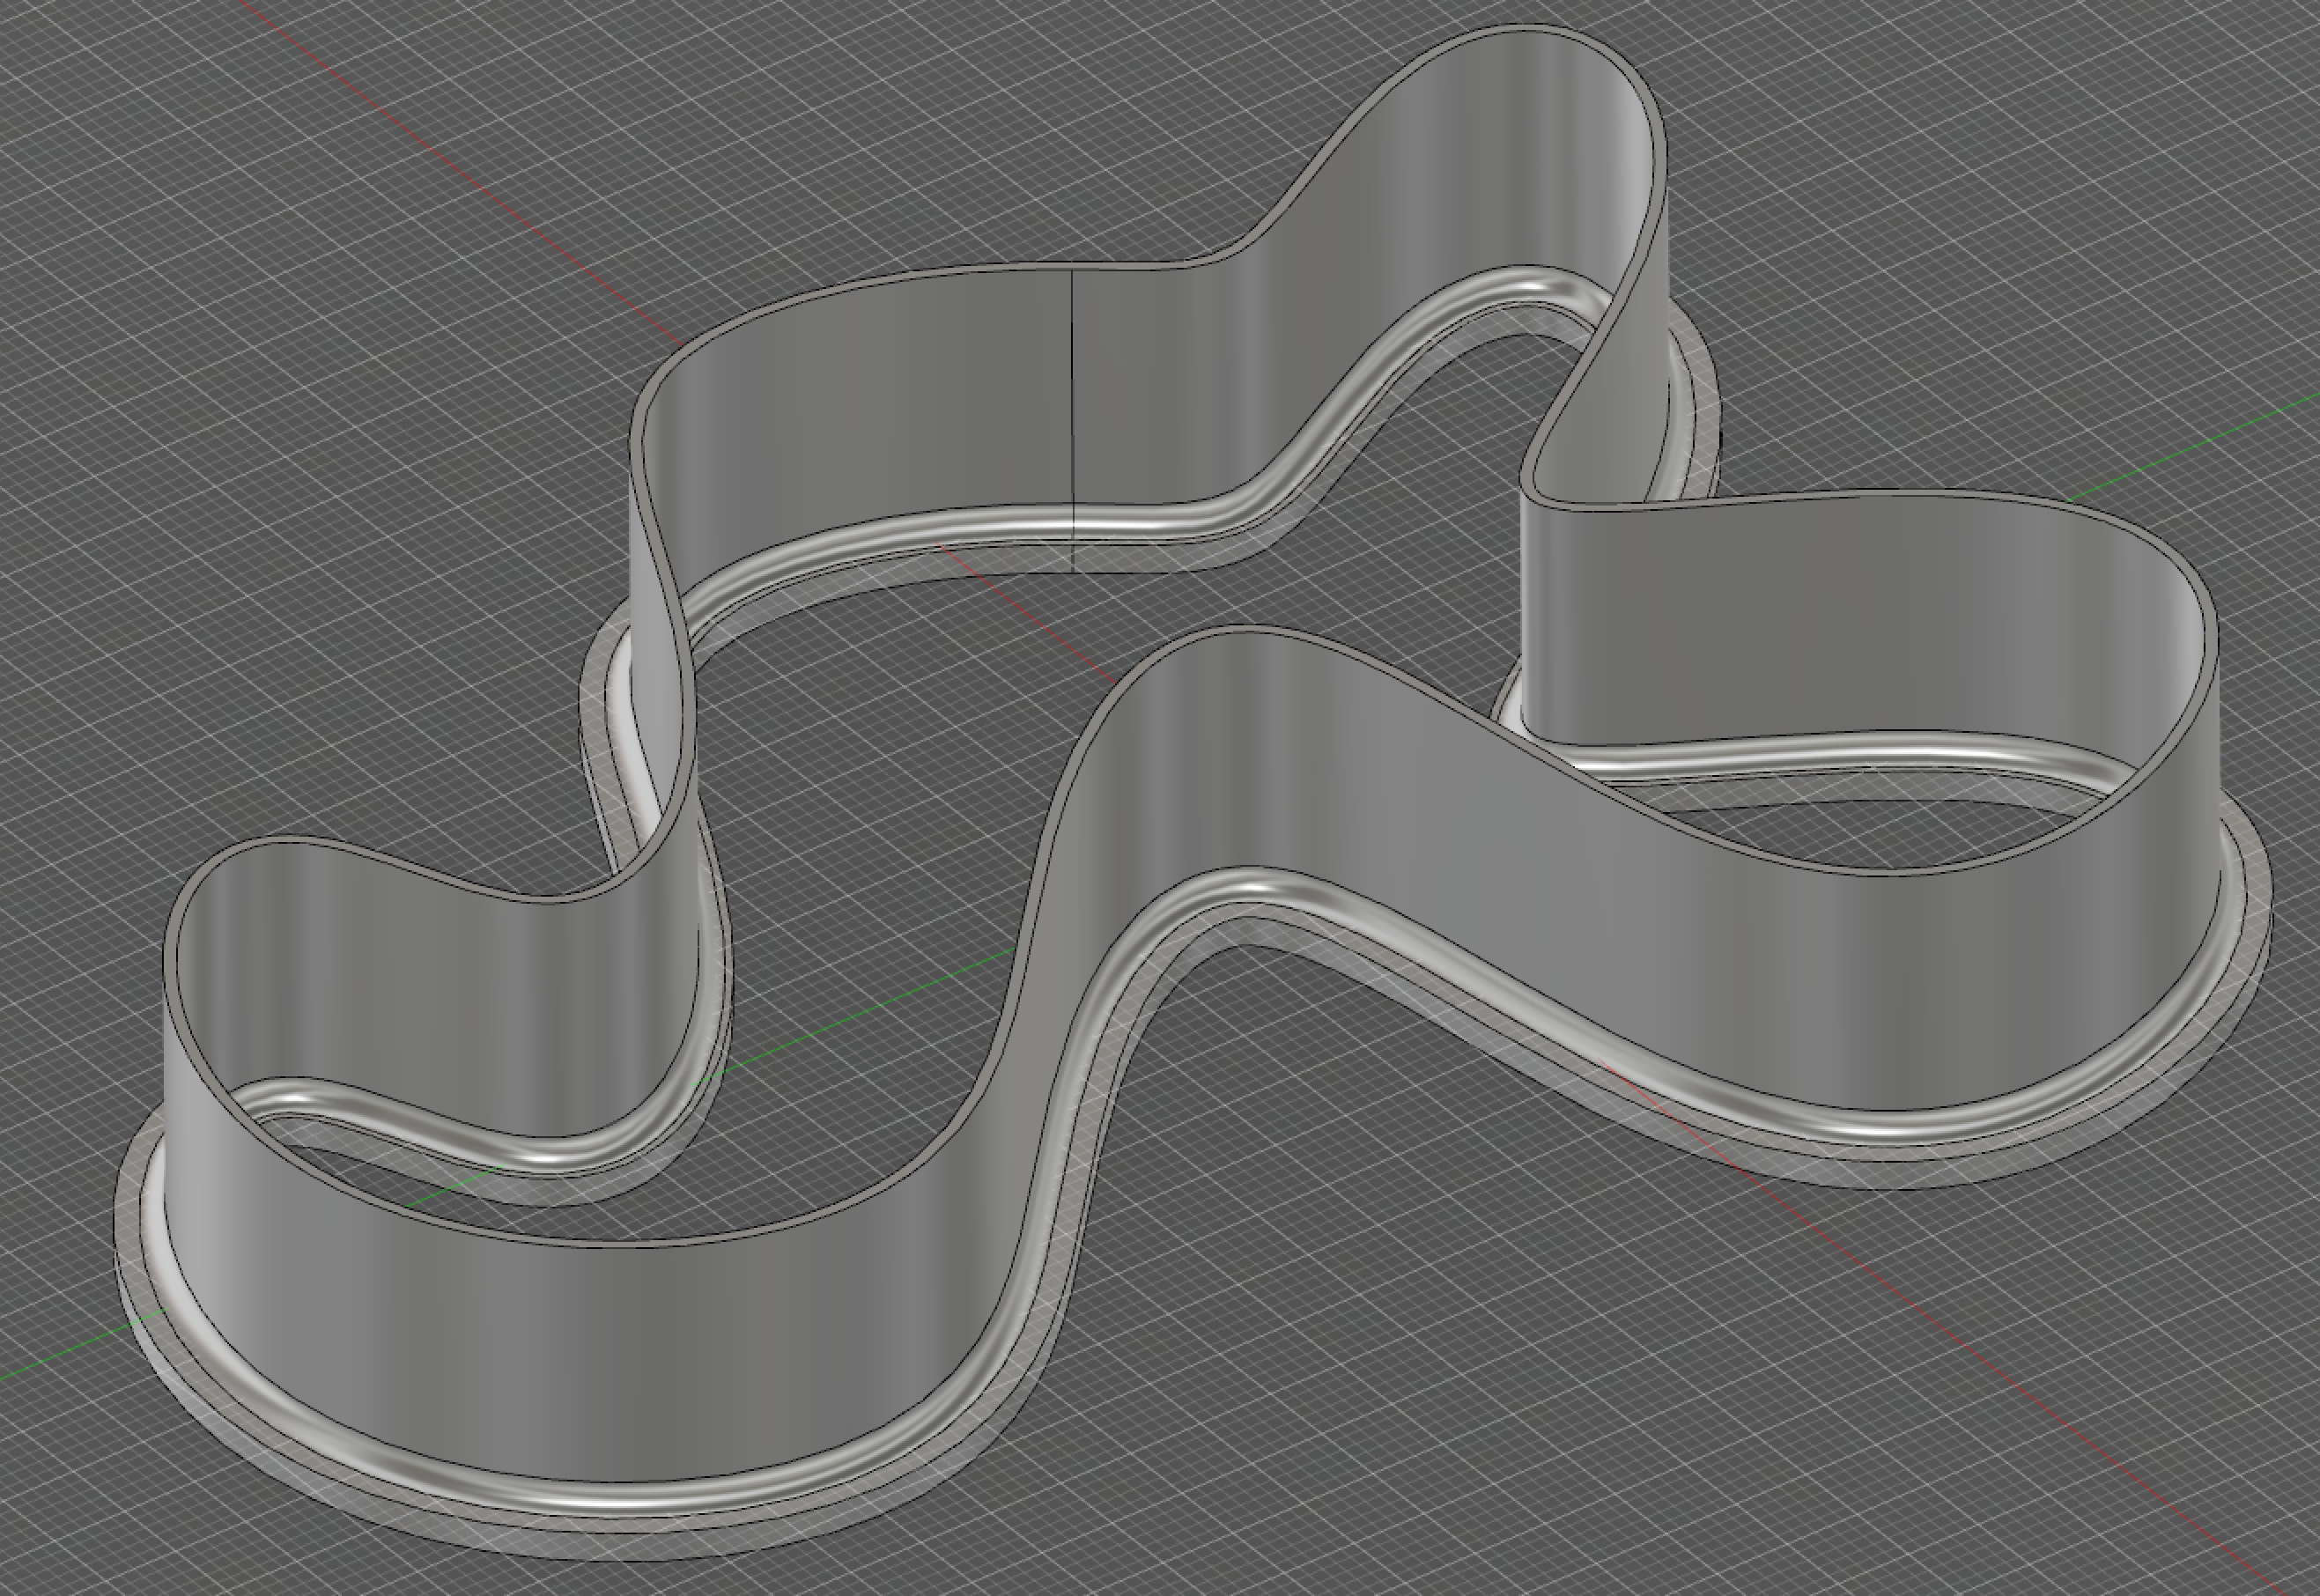 Need help with a model modification (cookie cutter!) - Autodesk